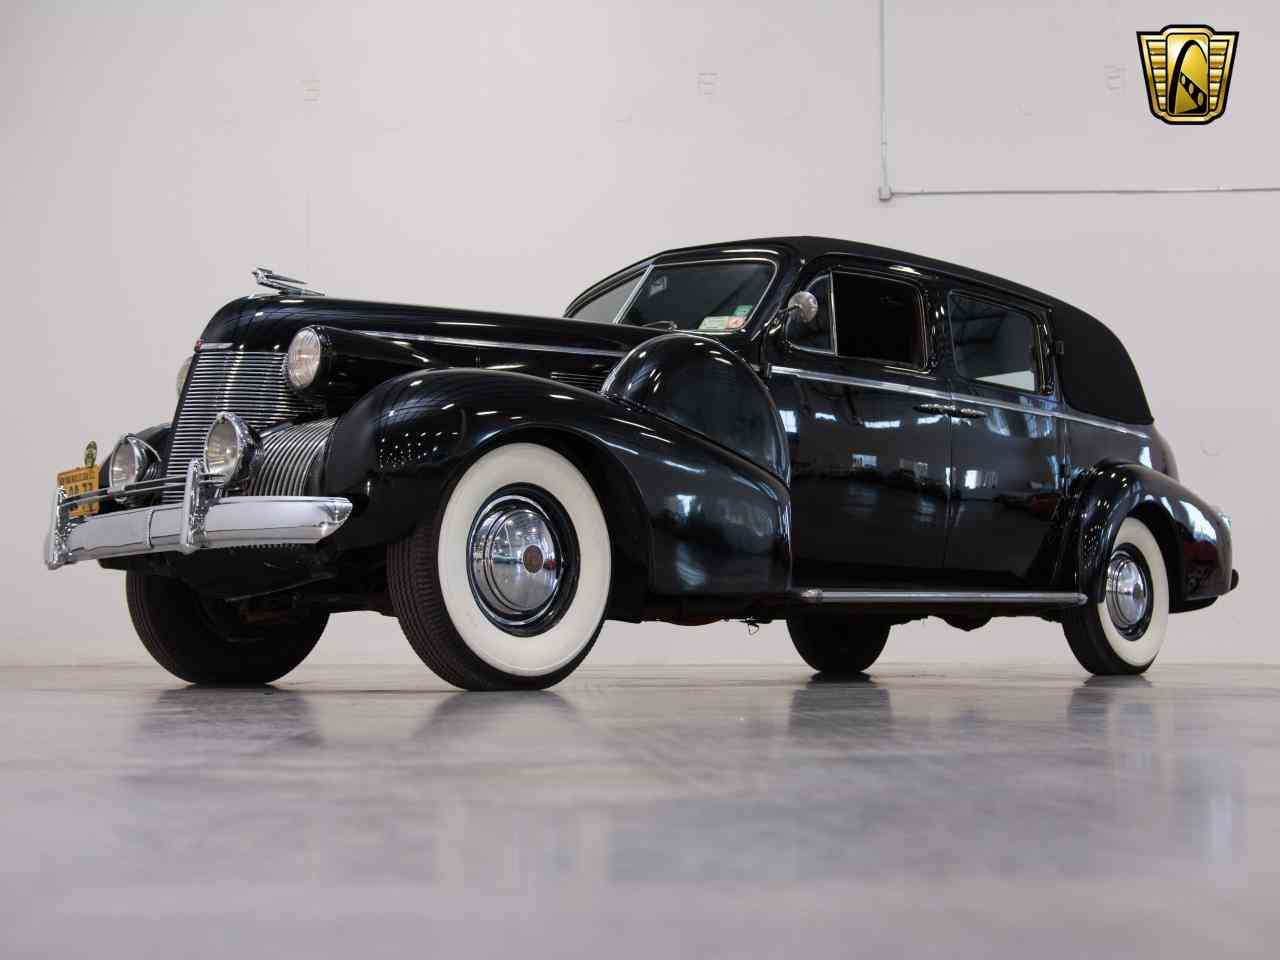 Large Picture of '39 7 Passenger Touring W/ Trunk located in Wisconsin Offered by Gateway Classic Cars - Milwaukee - KHP0